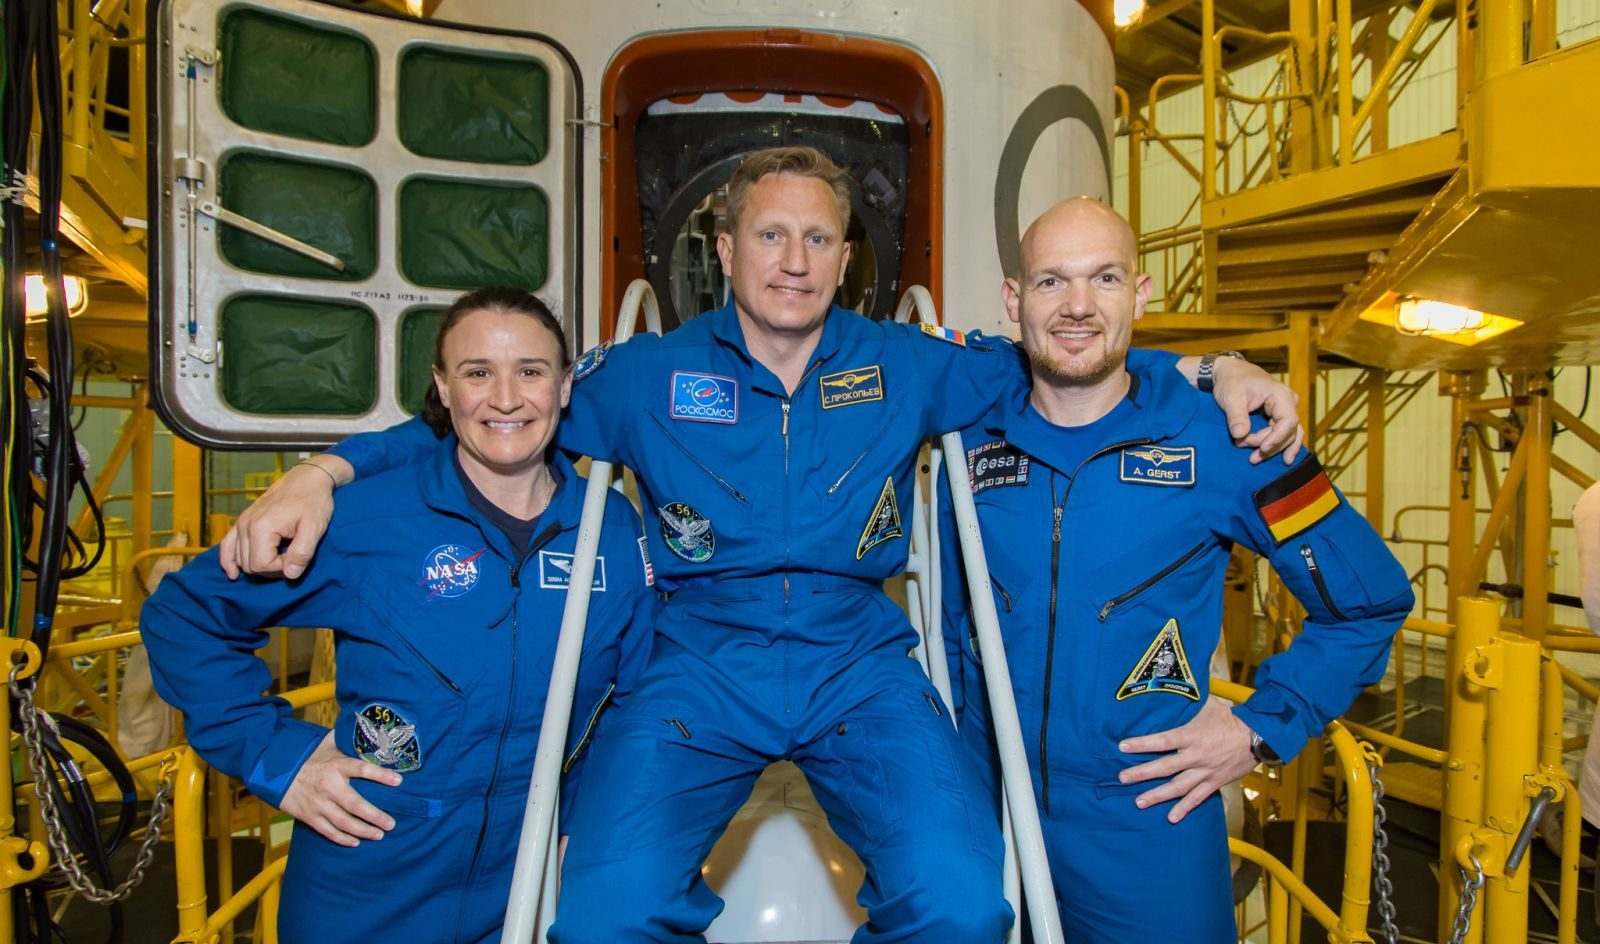 The Soyuz MS-09 prime crew. From left to right: Serena Aunon-Chancellor of NASA, Sergey Prokopyev of Roscosmos and Alexander Gerst of the European Space Agency. Photo Credit: Victor Zelentsov / NASA